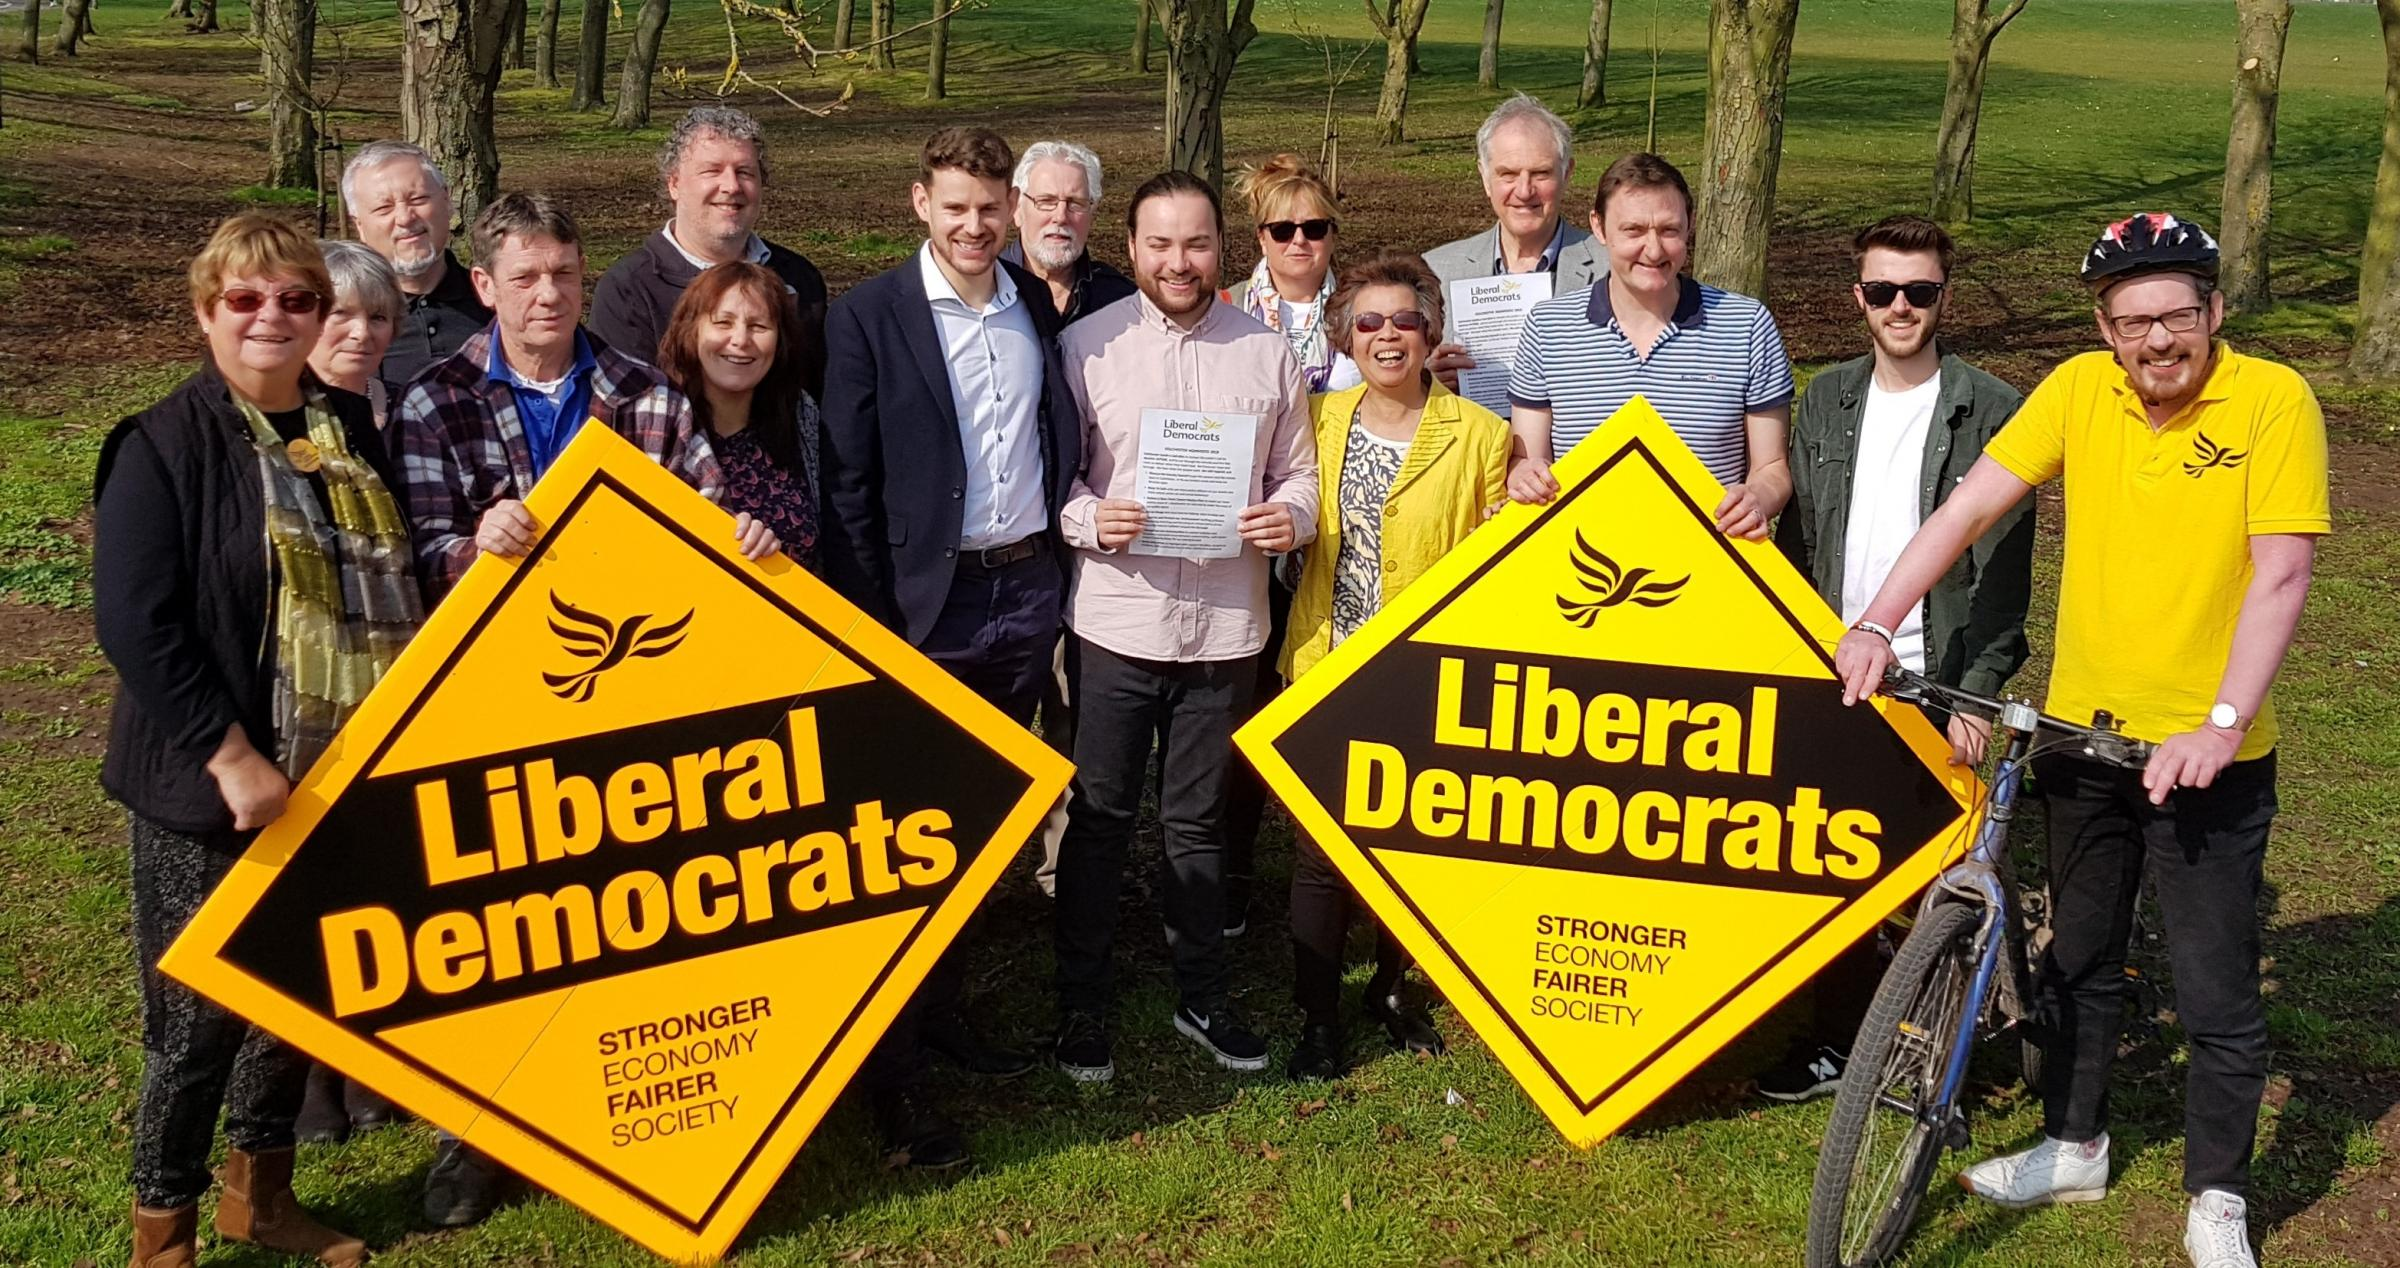 Plans - Colchester's Liberal Democrats launch their manifesto